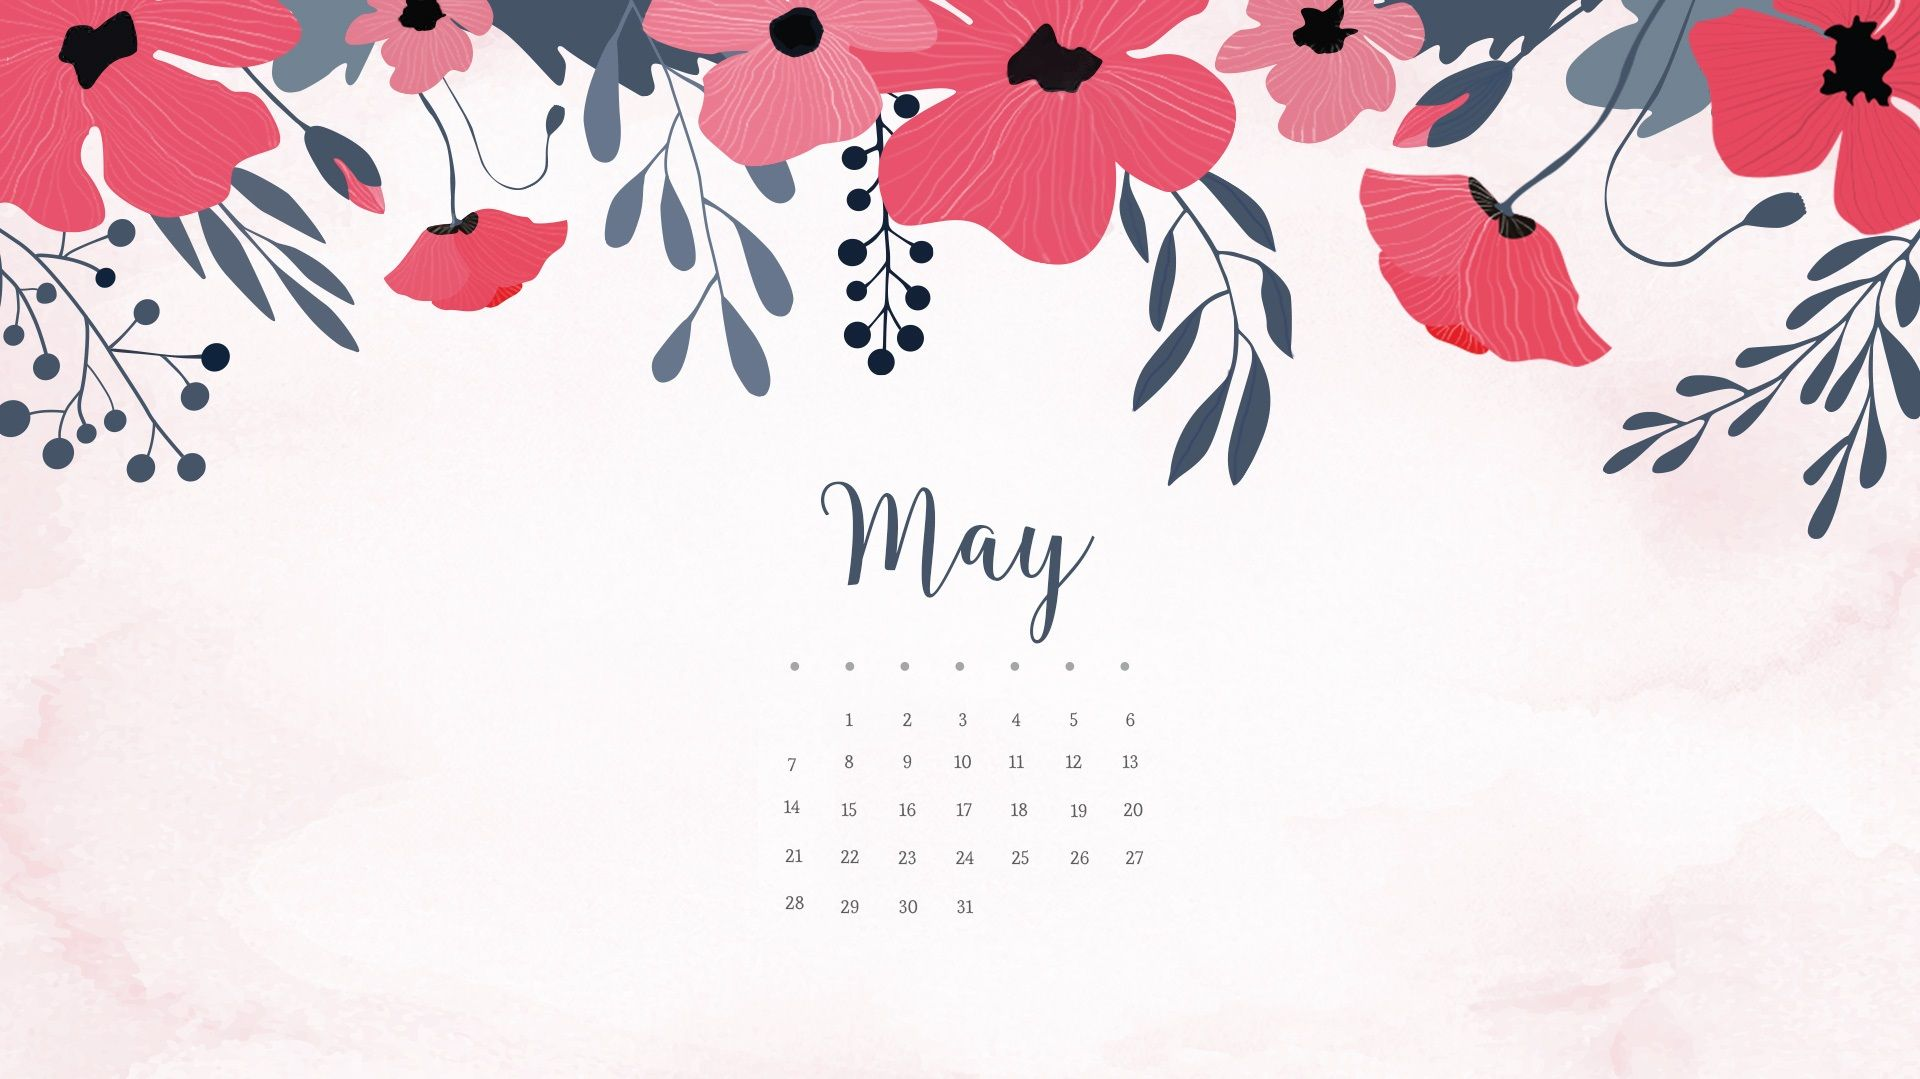 May 2018 Desktop Calendar Wallpaper Wallpapers in 2019 May 1920x1079